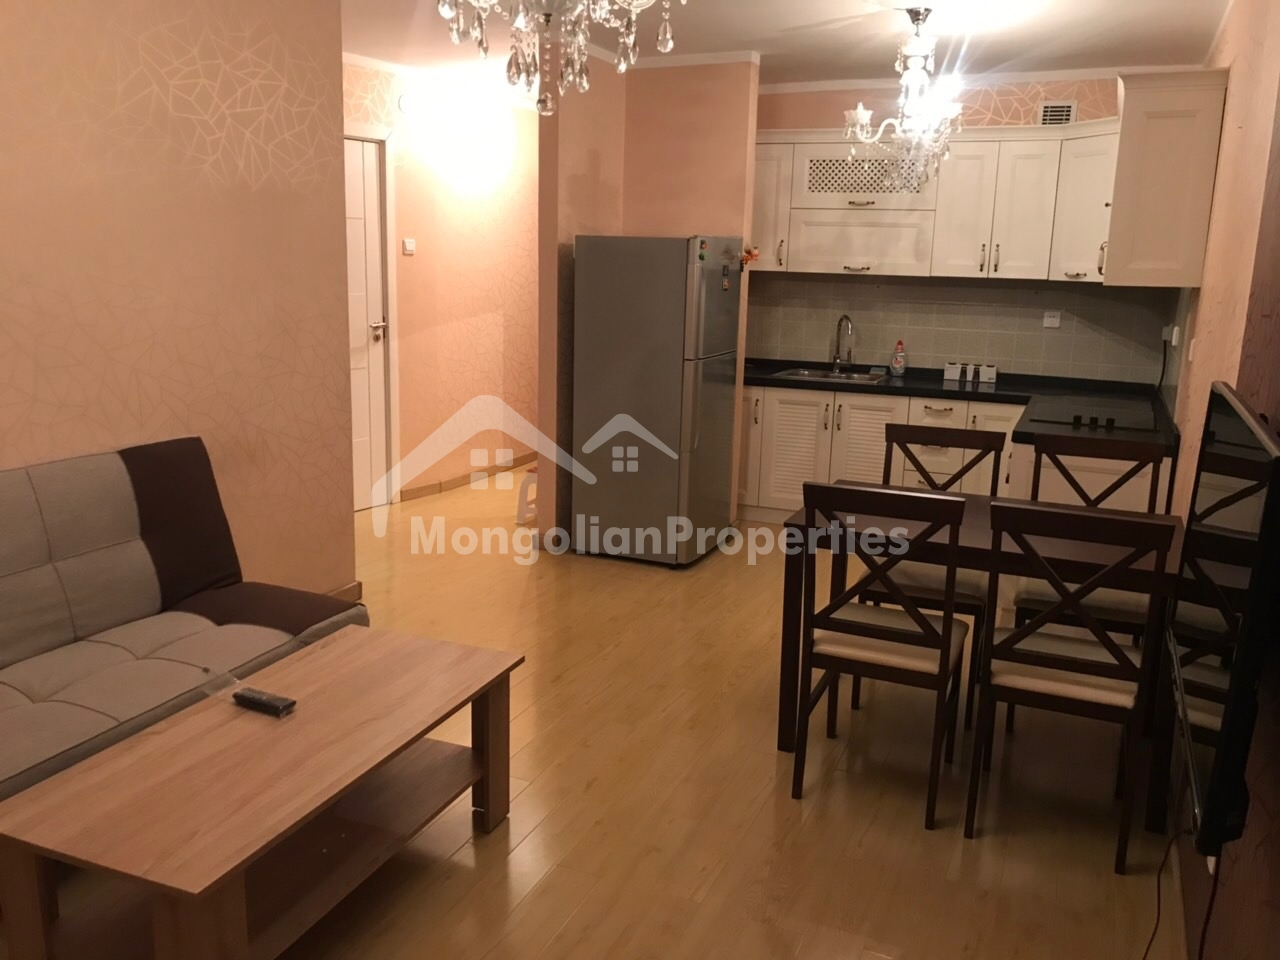 For rent: 1 bedroom apartment right next to Ulaanbaatar mall /UB town